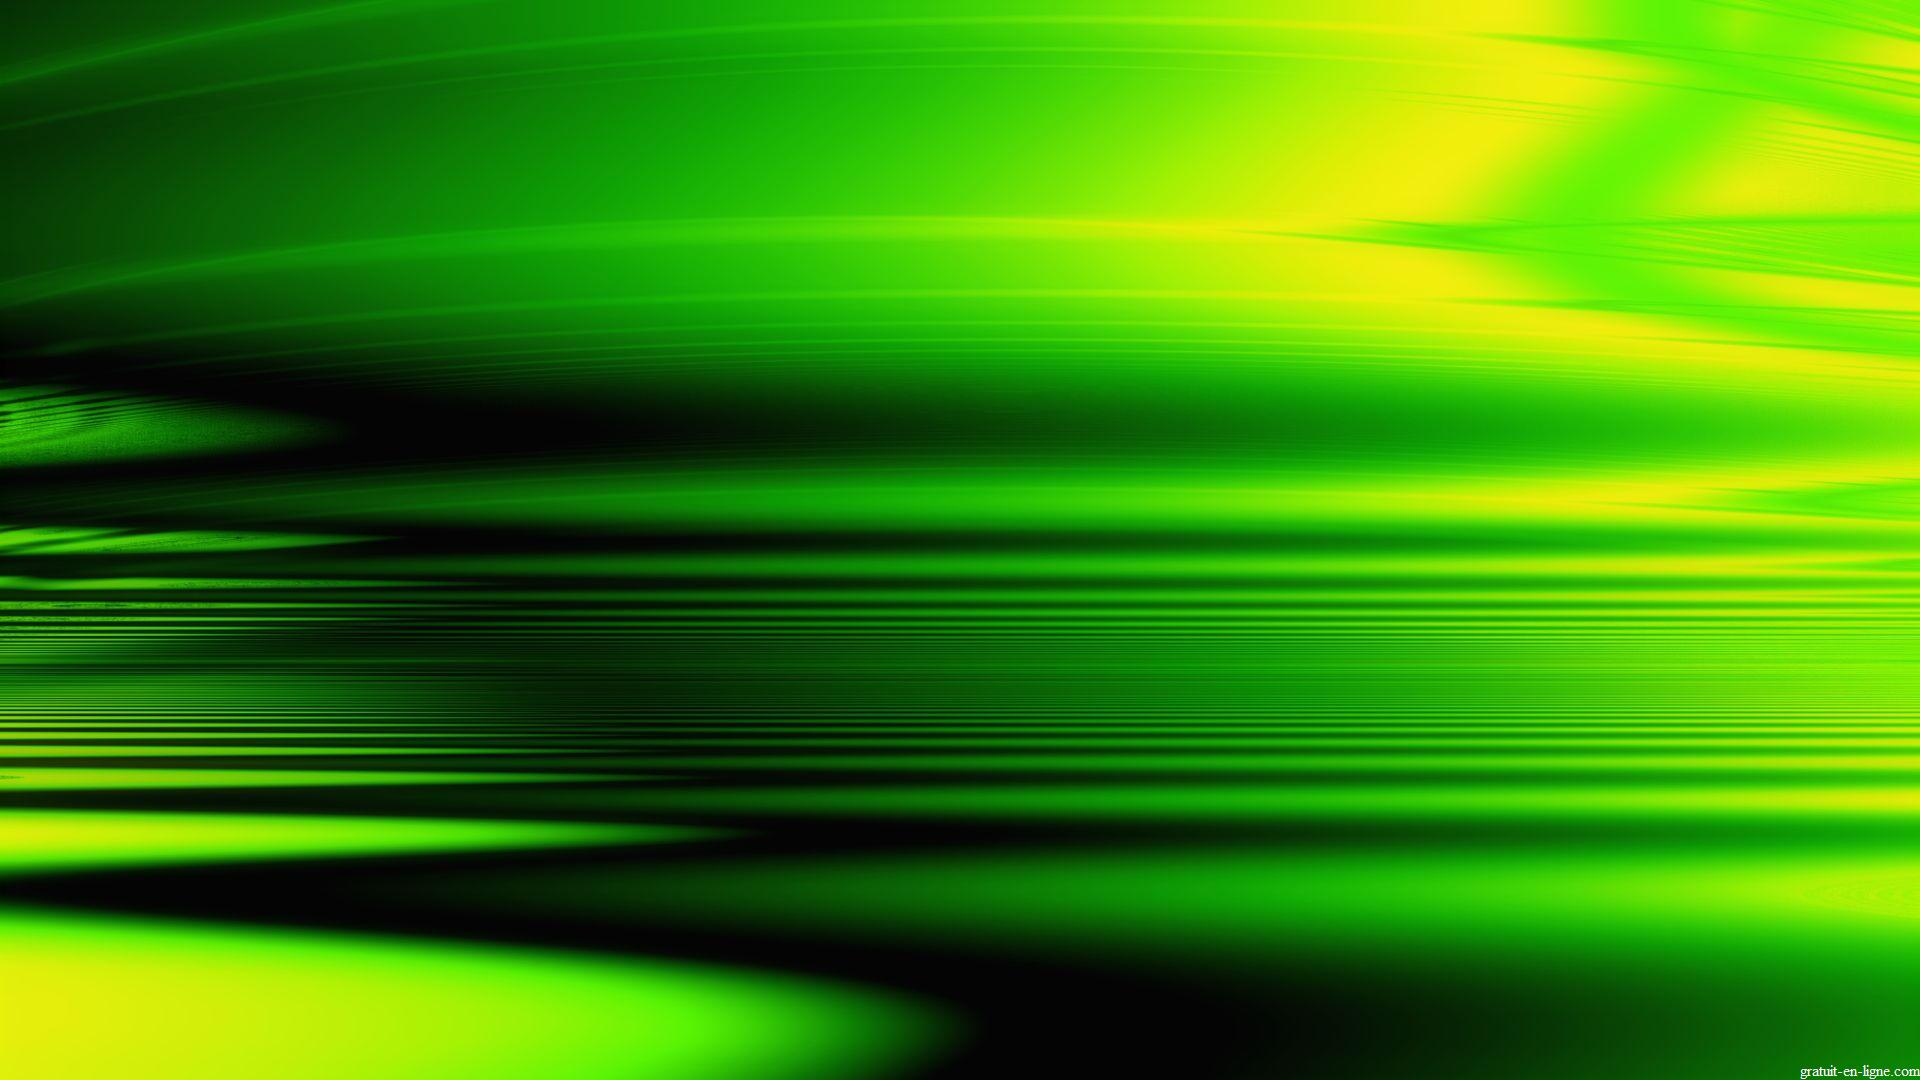 technology green wallpaper 368898